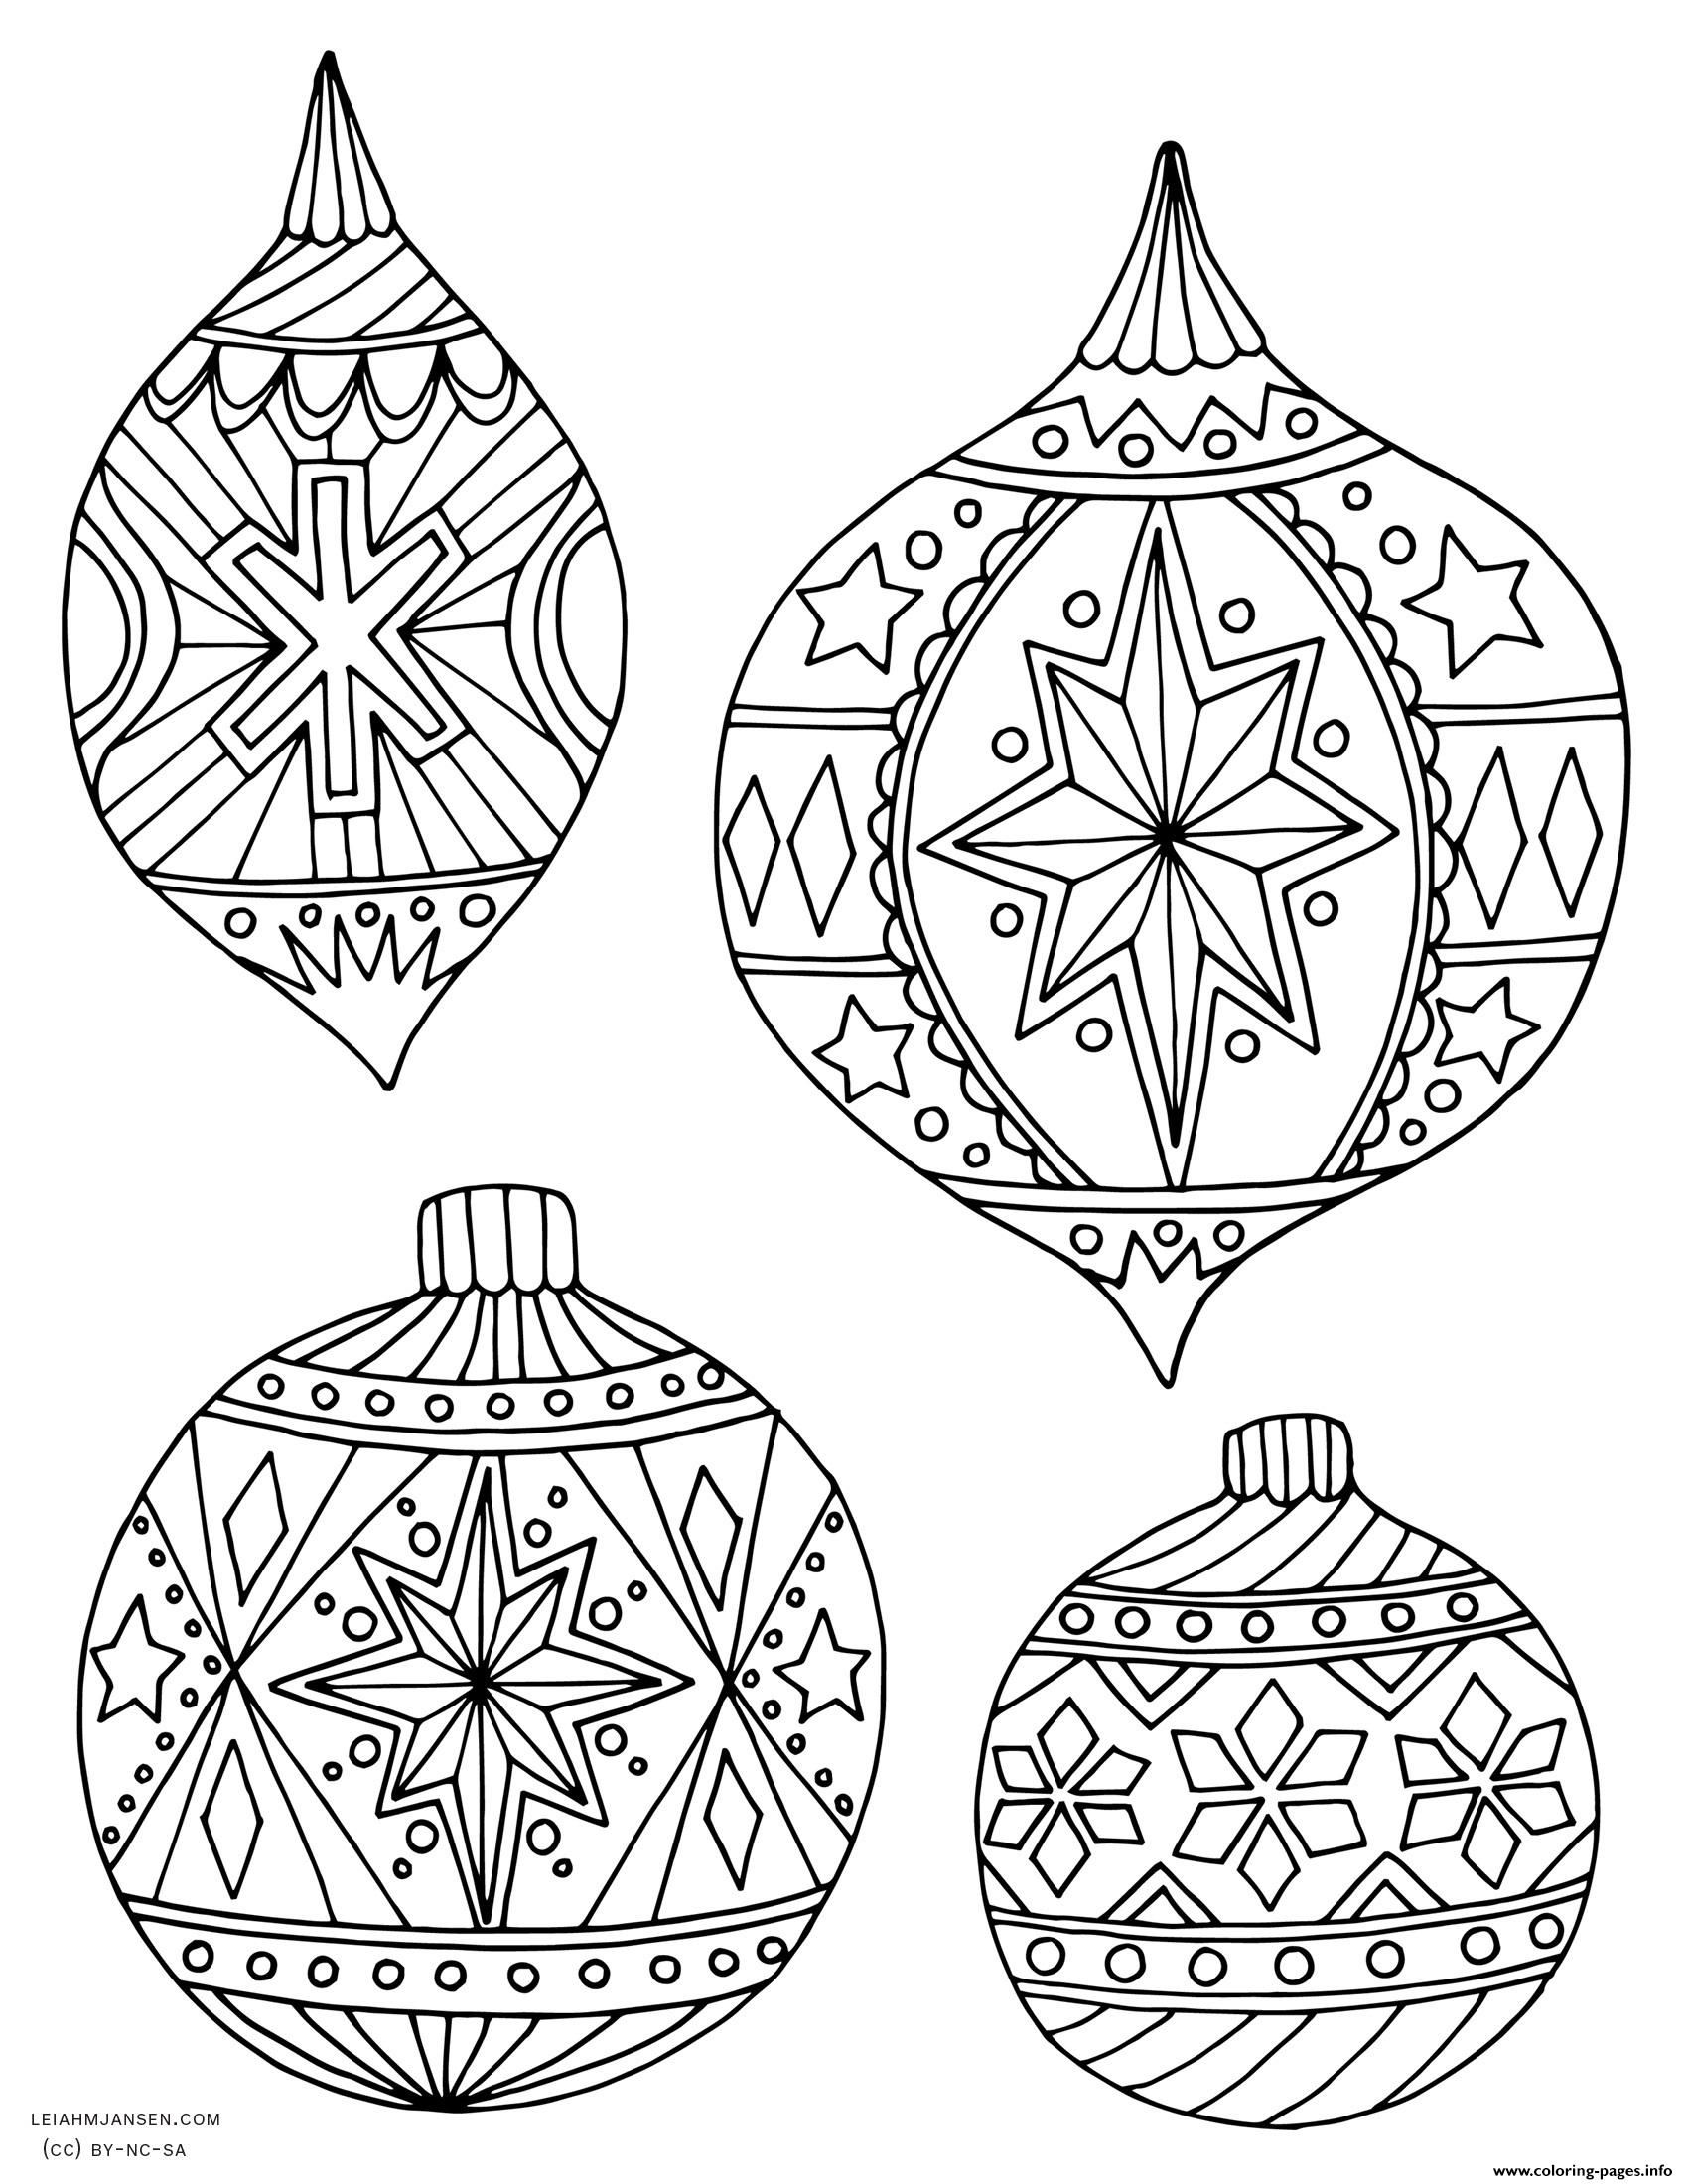 Print Adult Christmas Holiday Ornaments Coloring Pages